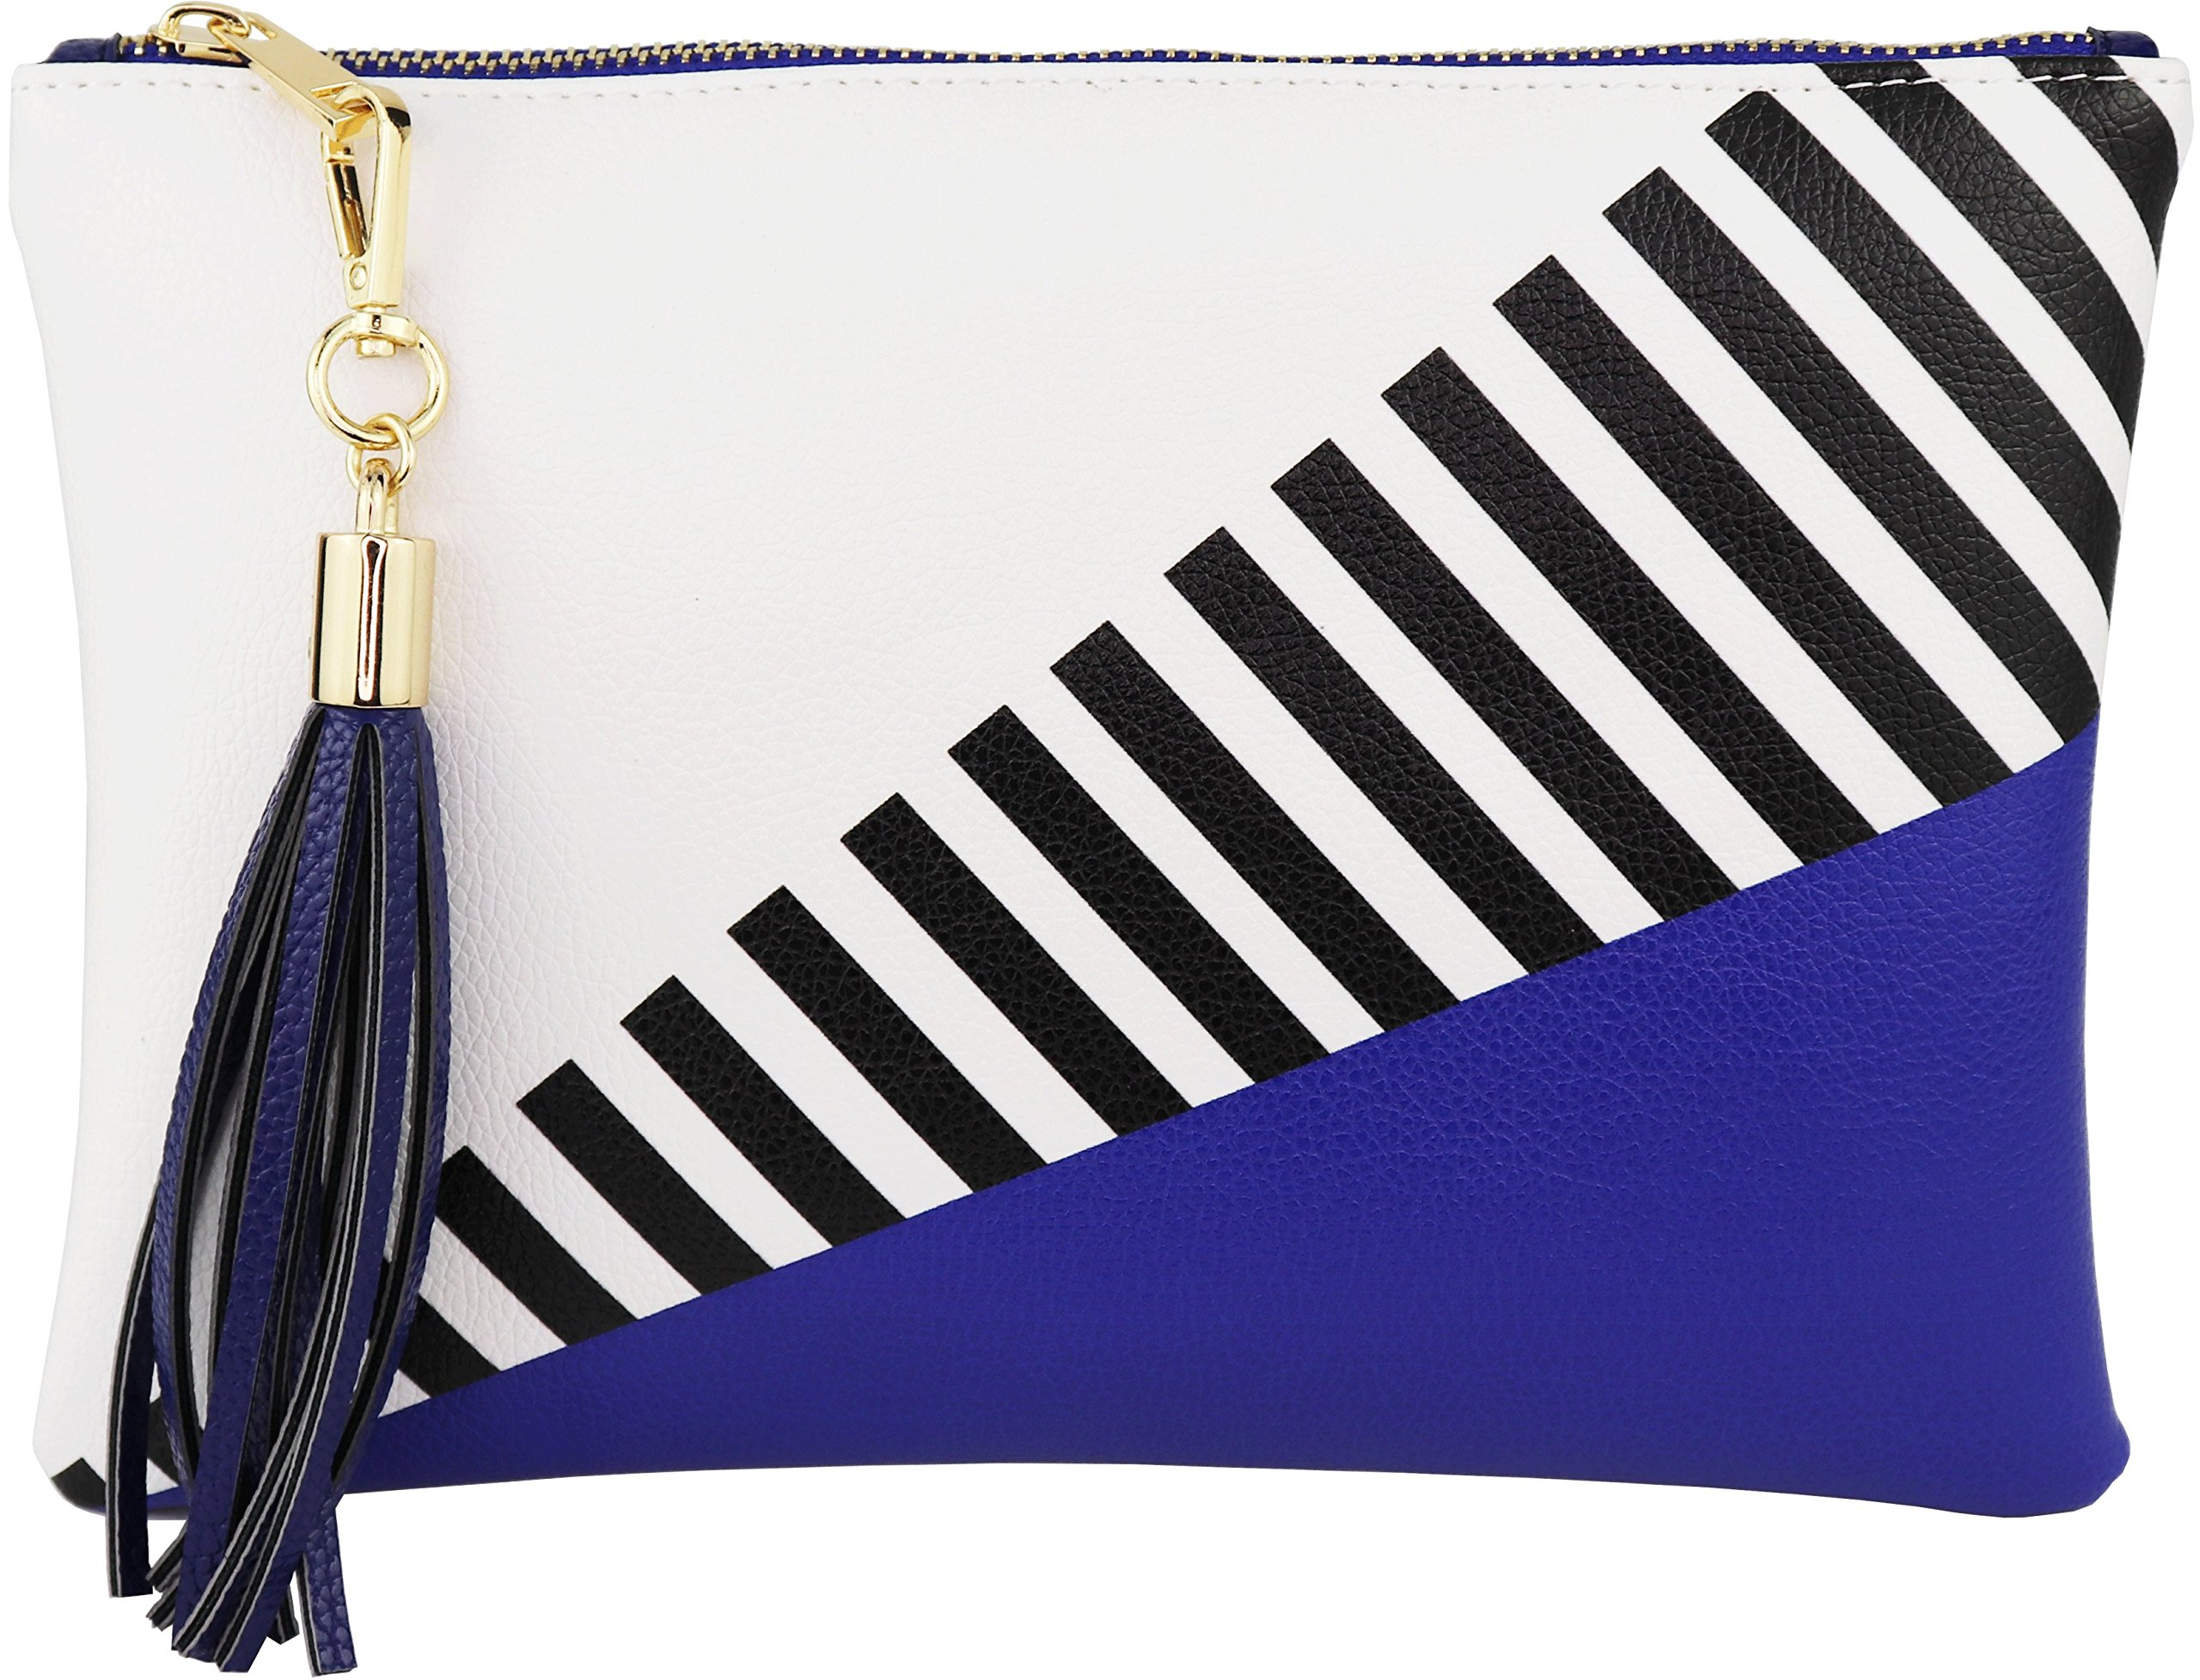 B BRENTANO Vegan Clutch Bag Pouch with Tassel Accent (Blue) by B BRENTANO